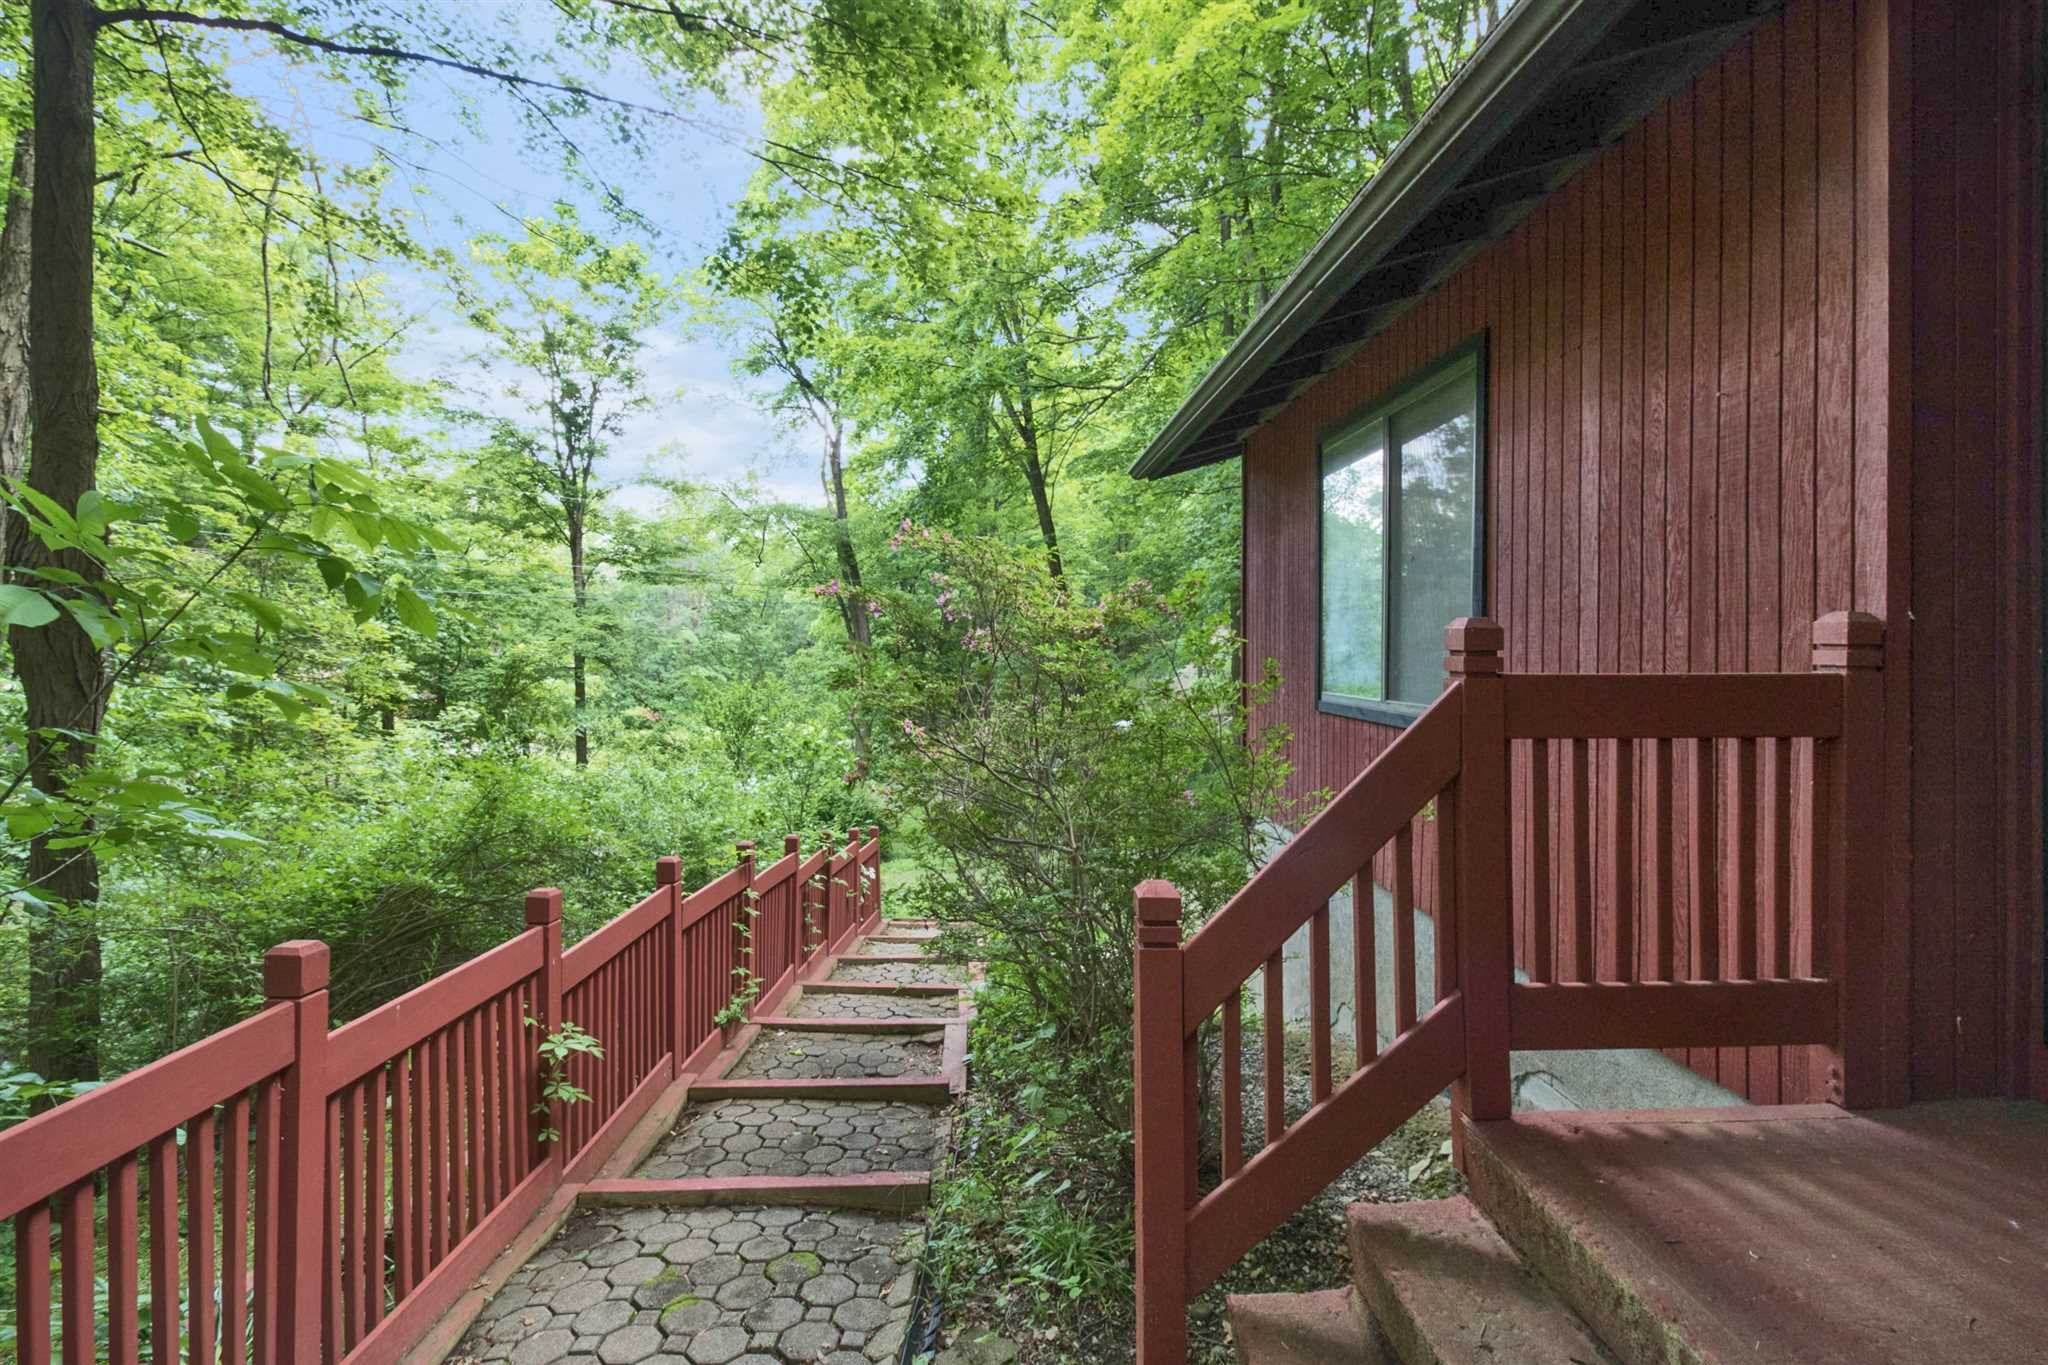 Single Family Home for Sale at 22 DRY POND ROAD 22 DRY POND ROAD Cold Spring, New York 10516 United States